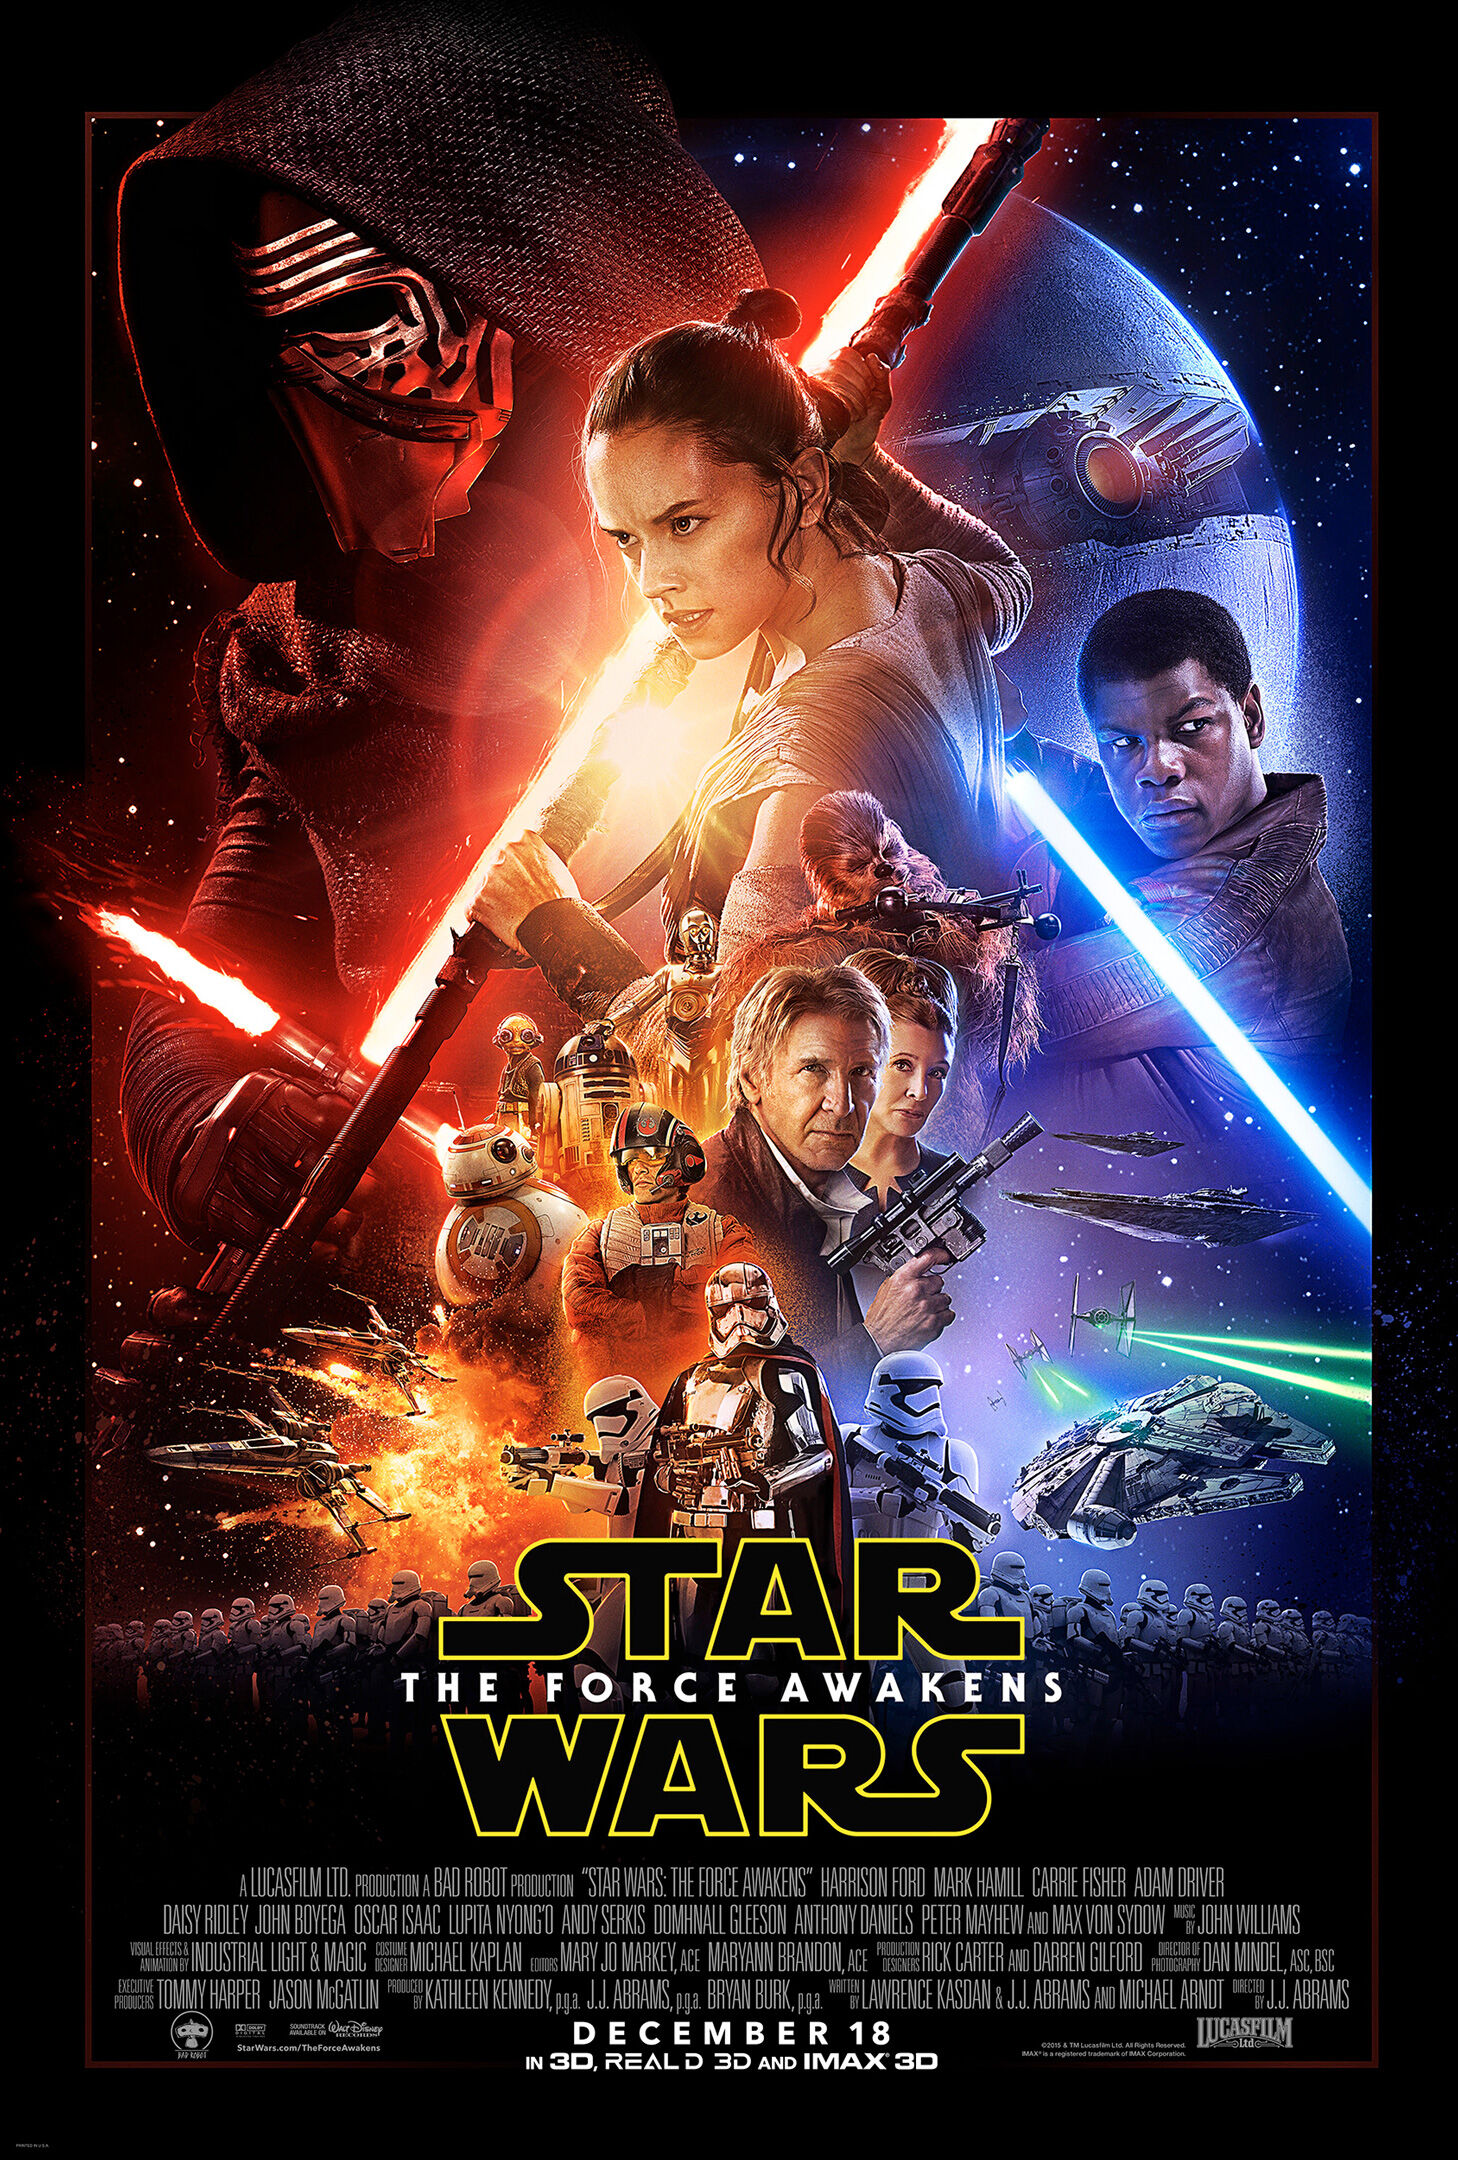 Star Wars Episode VII The Force Awakens (1).jpg